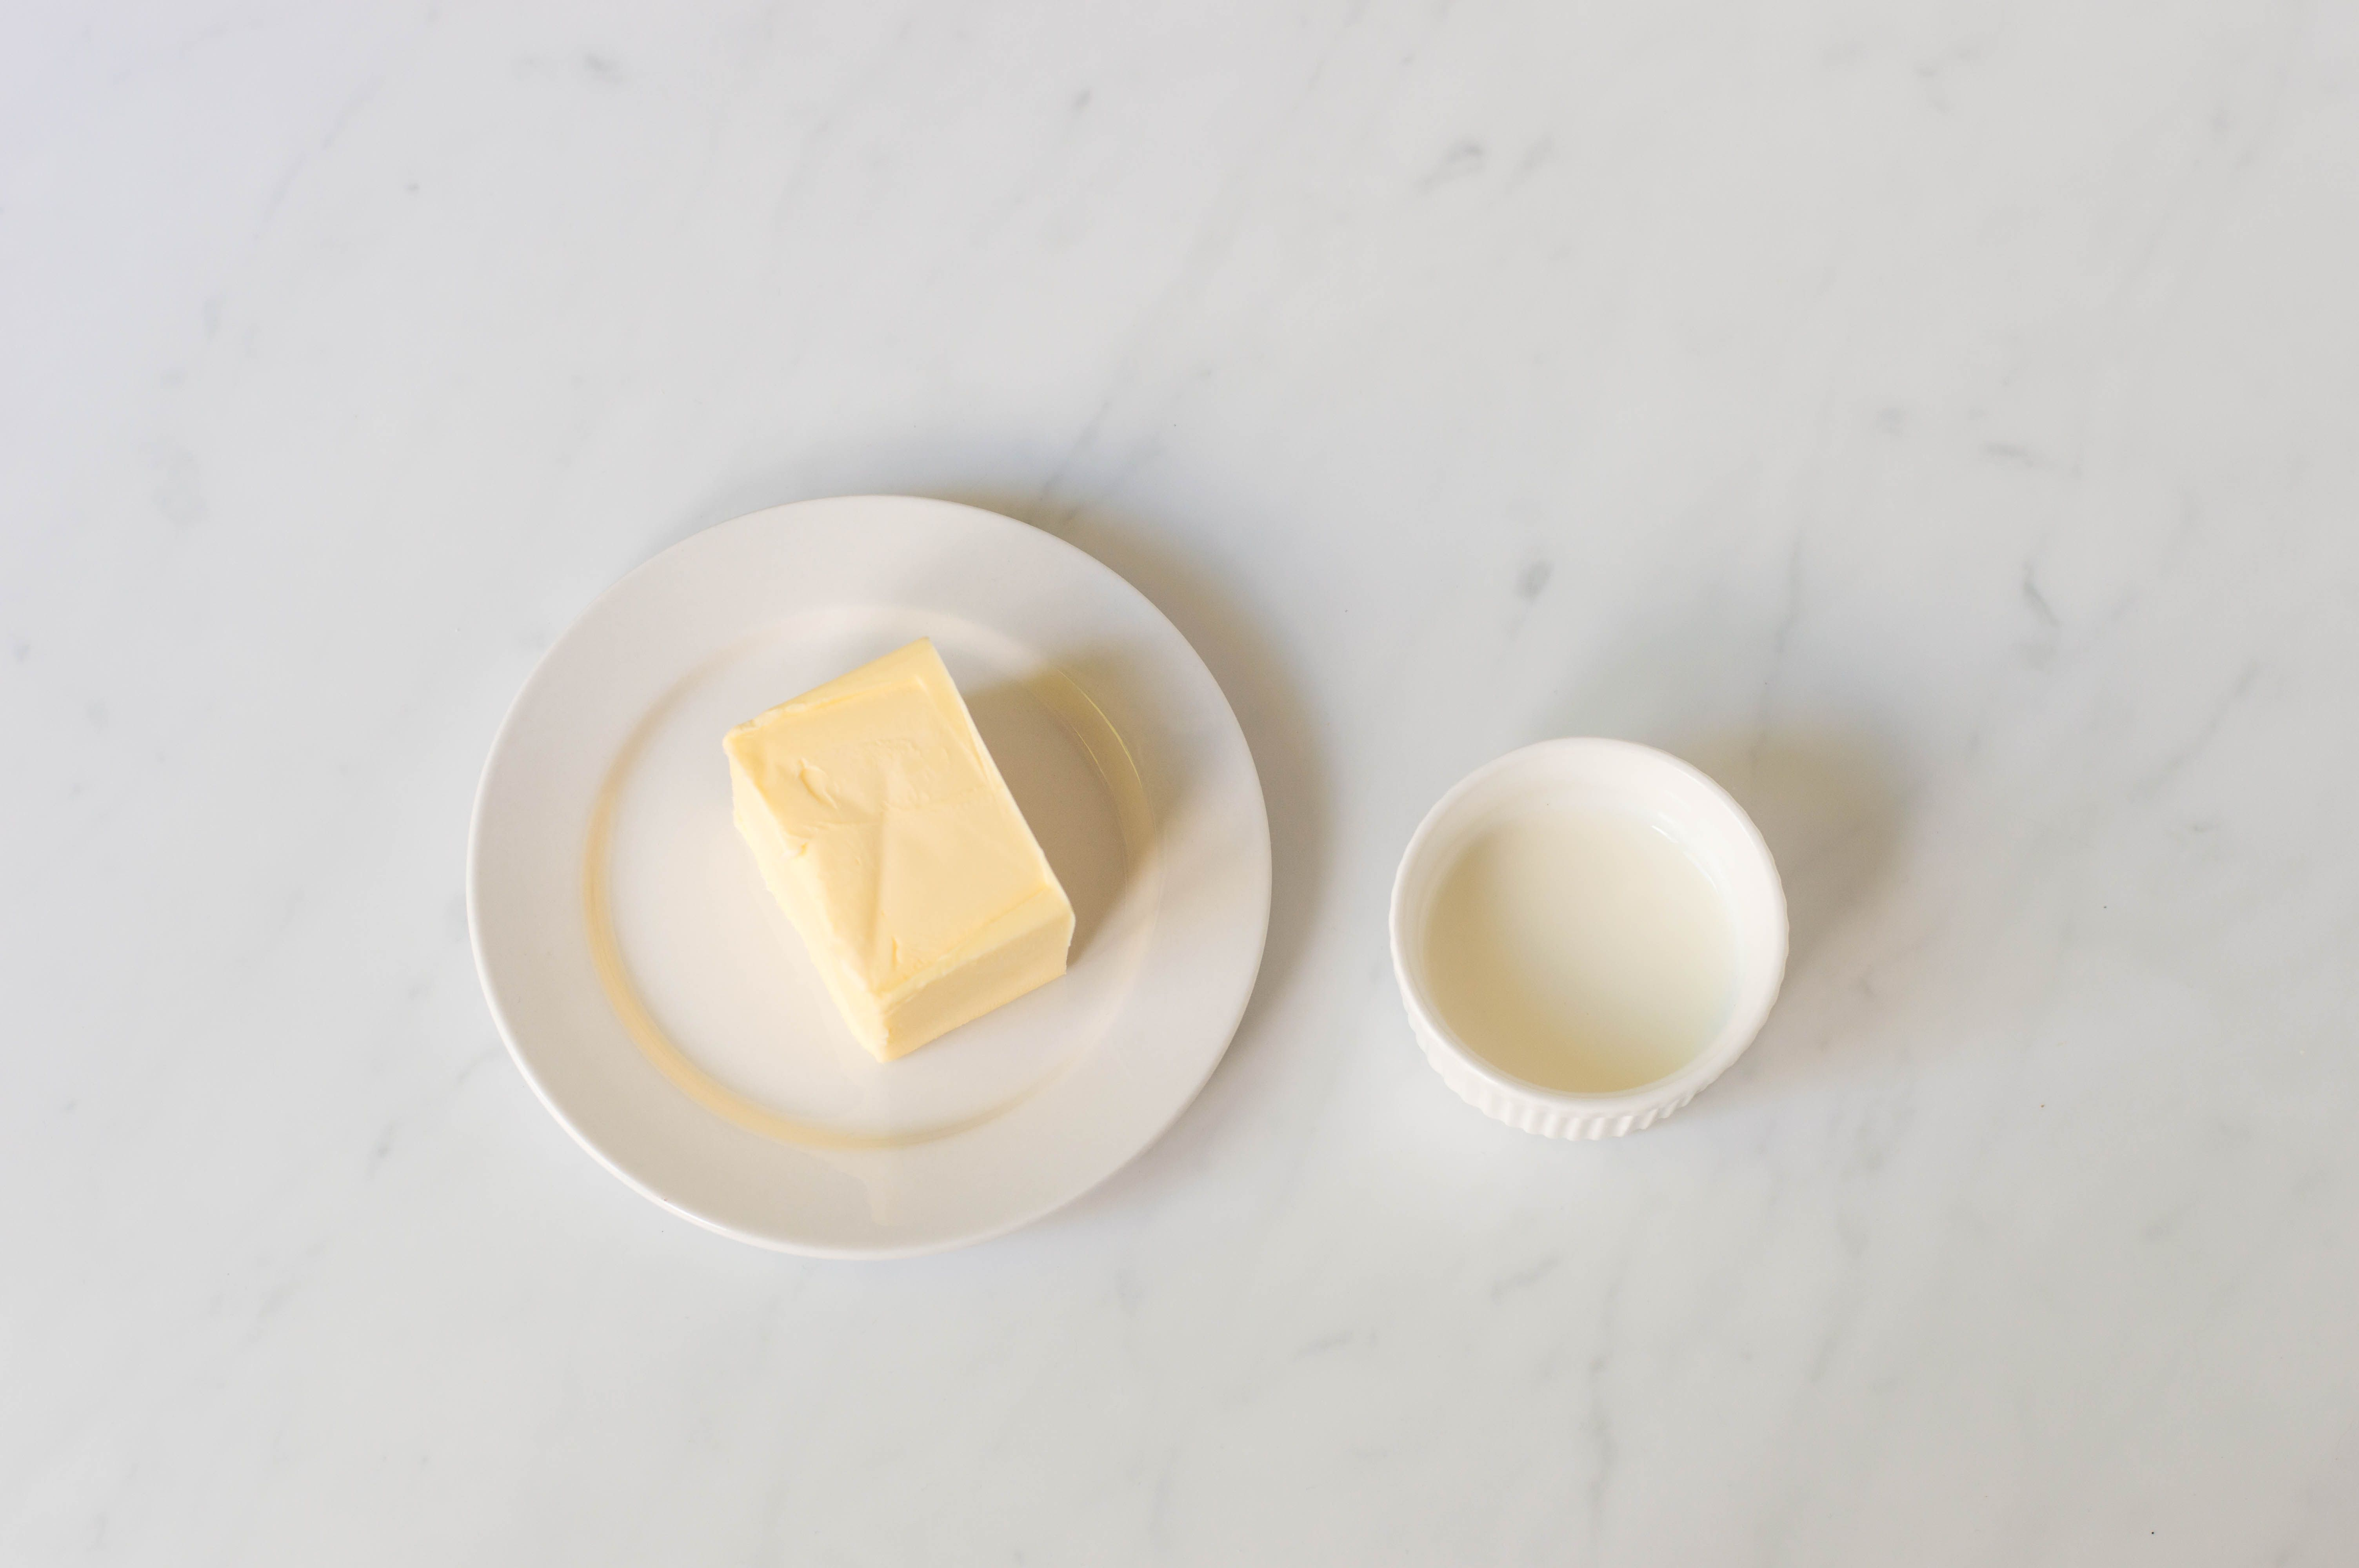 Ingredients for whipped butter